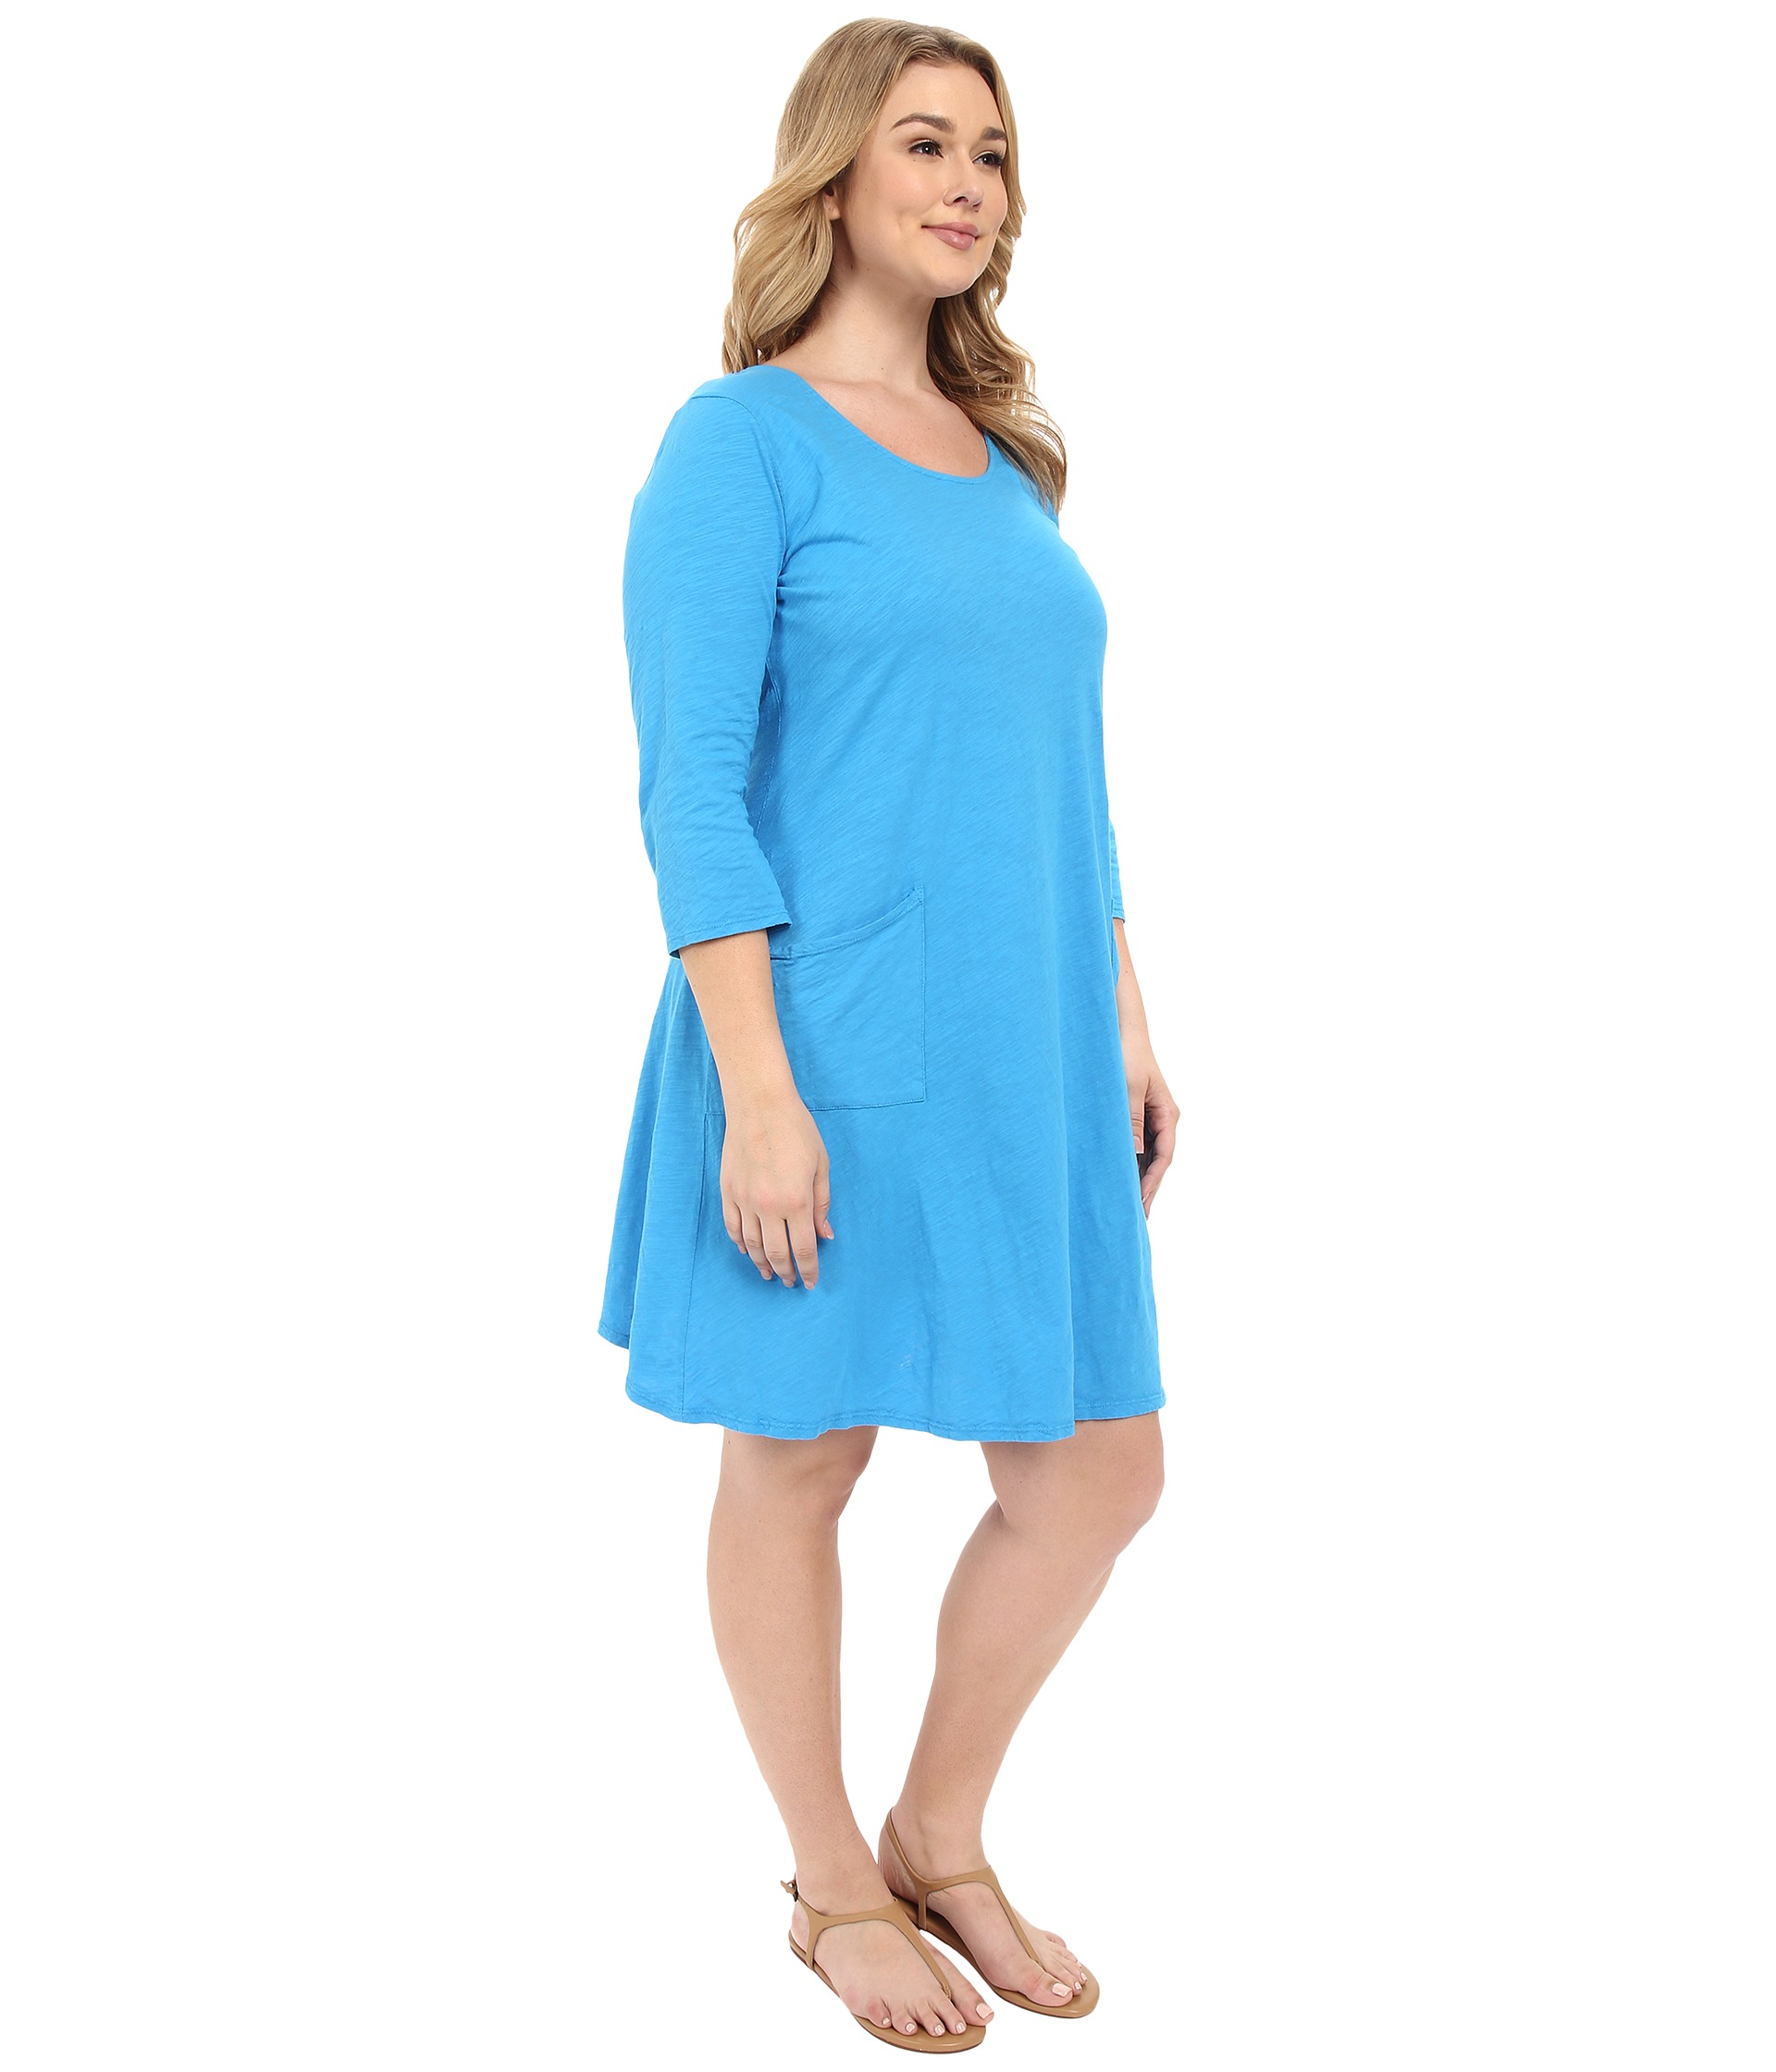 Zappos Womens Plus Size Dresses 104